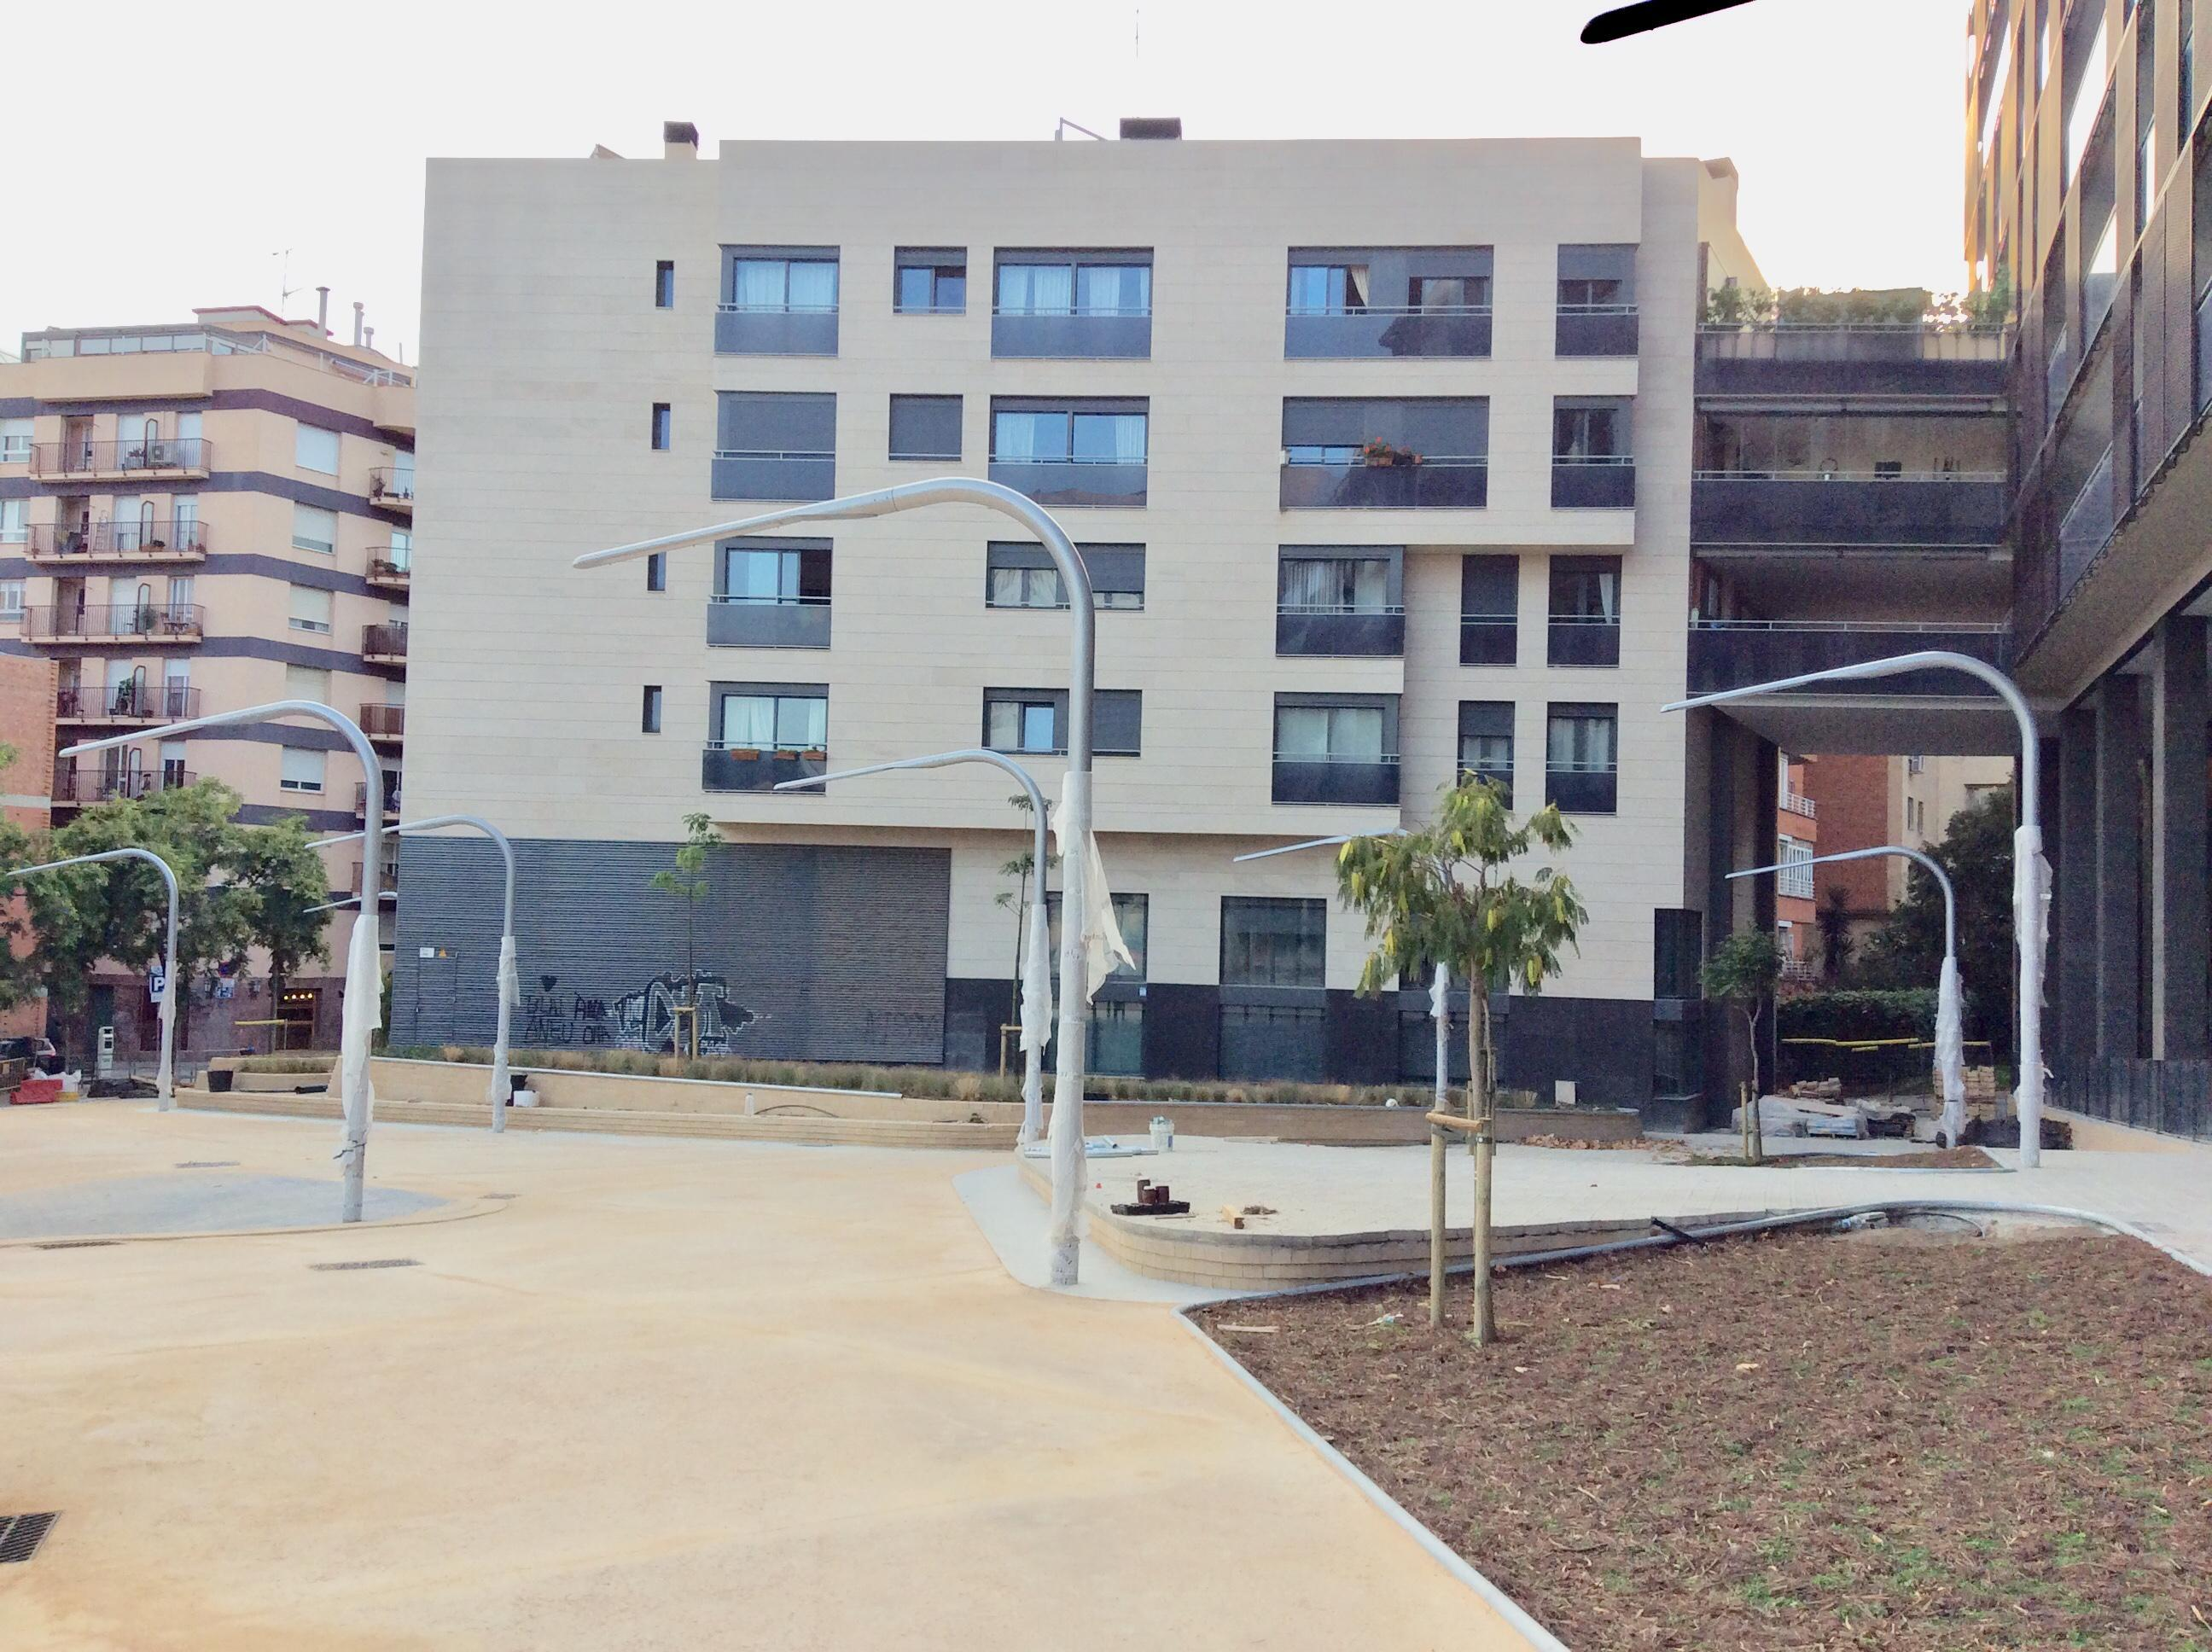 208066 Commercial Premises for sale in Les Corts, Les Corts 22